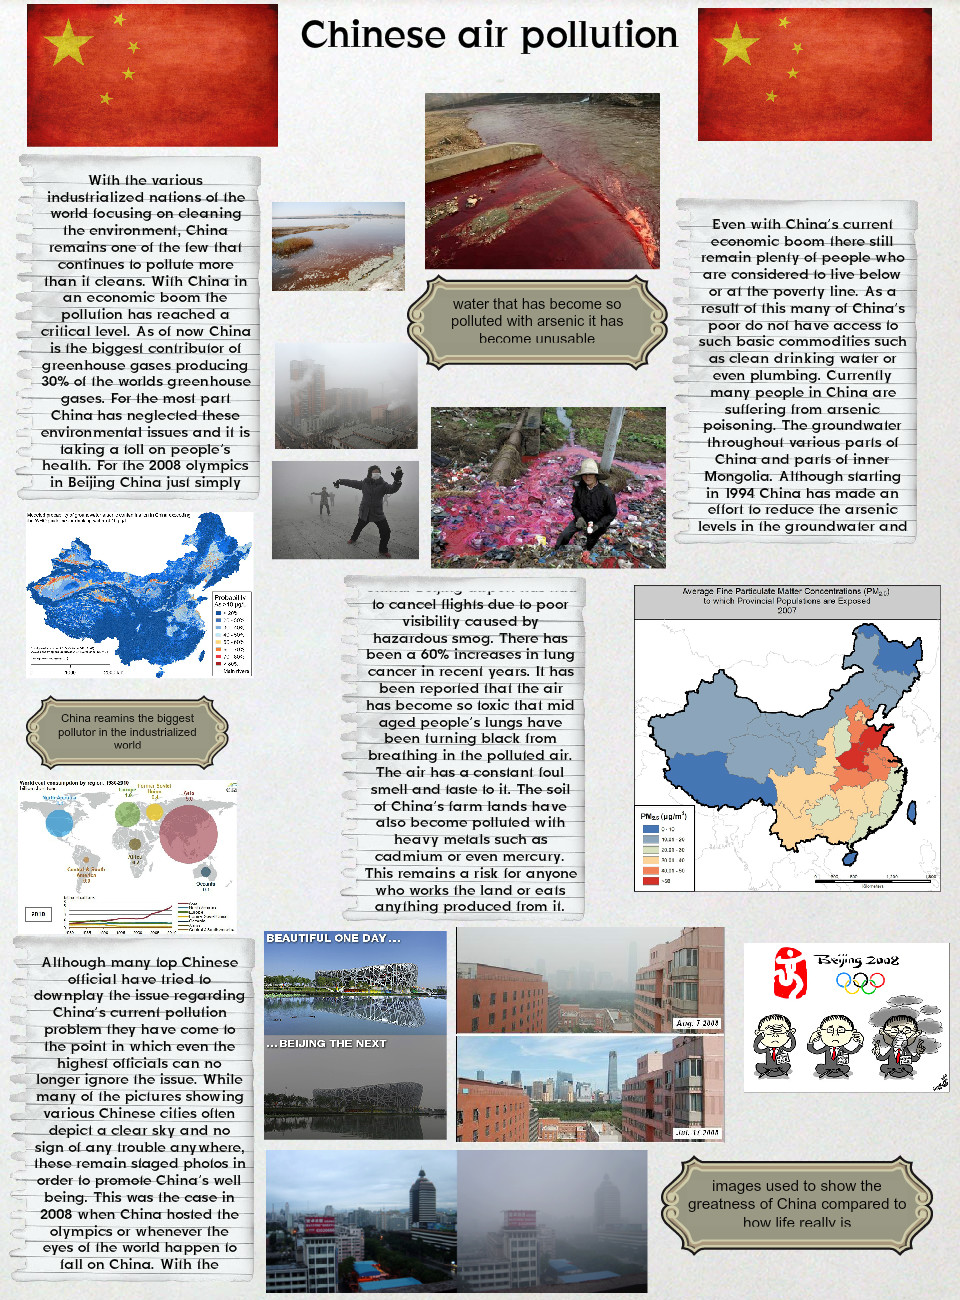 China's pollution